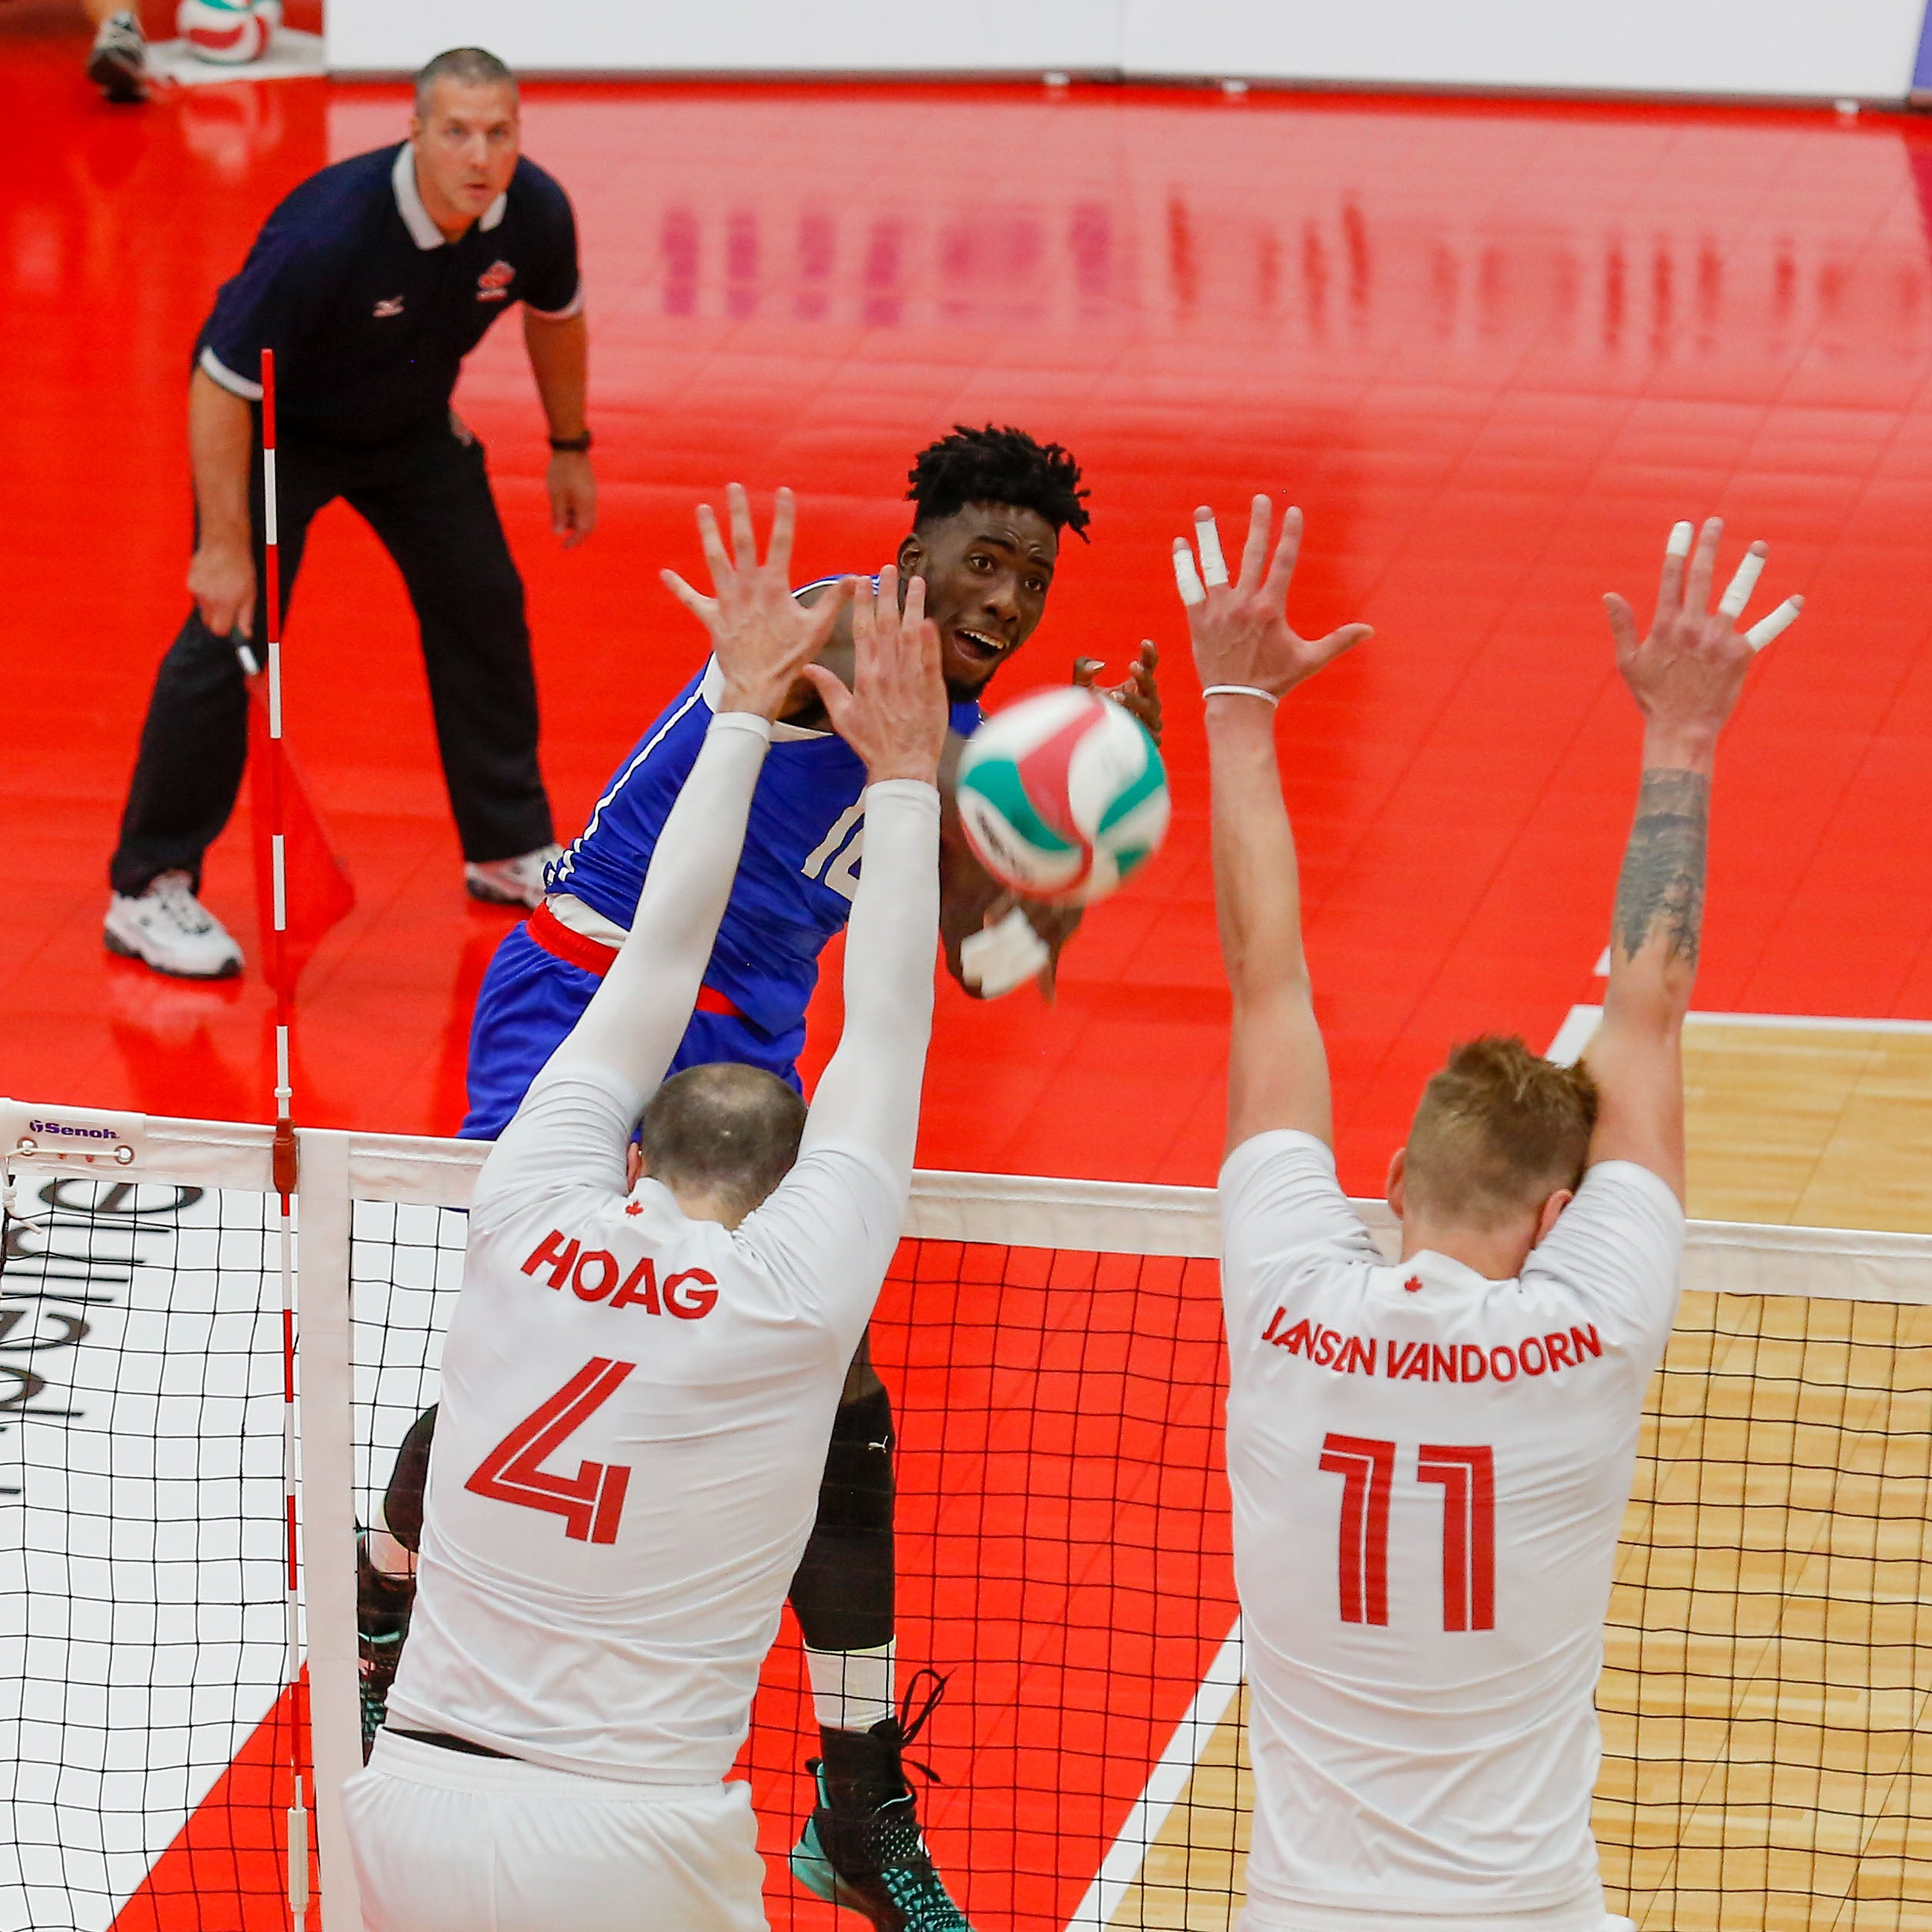 Canadian men's volleyball team playing for Olympic lives